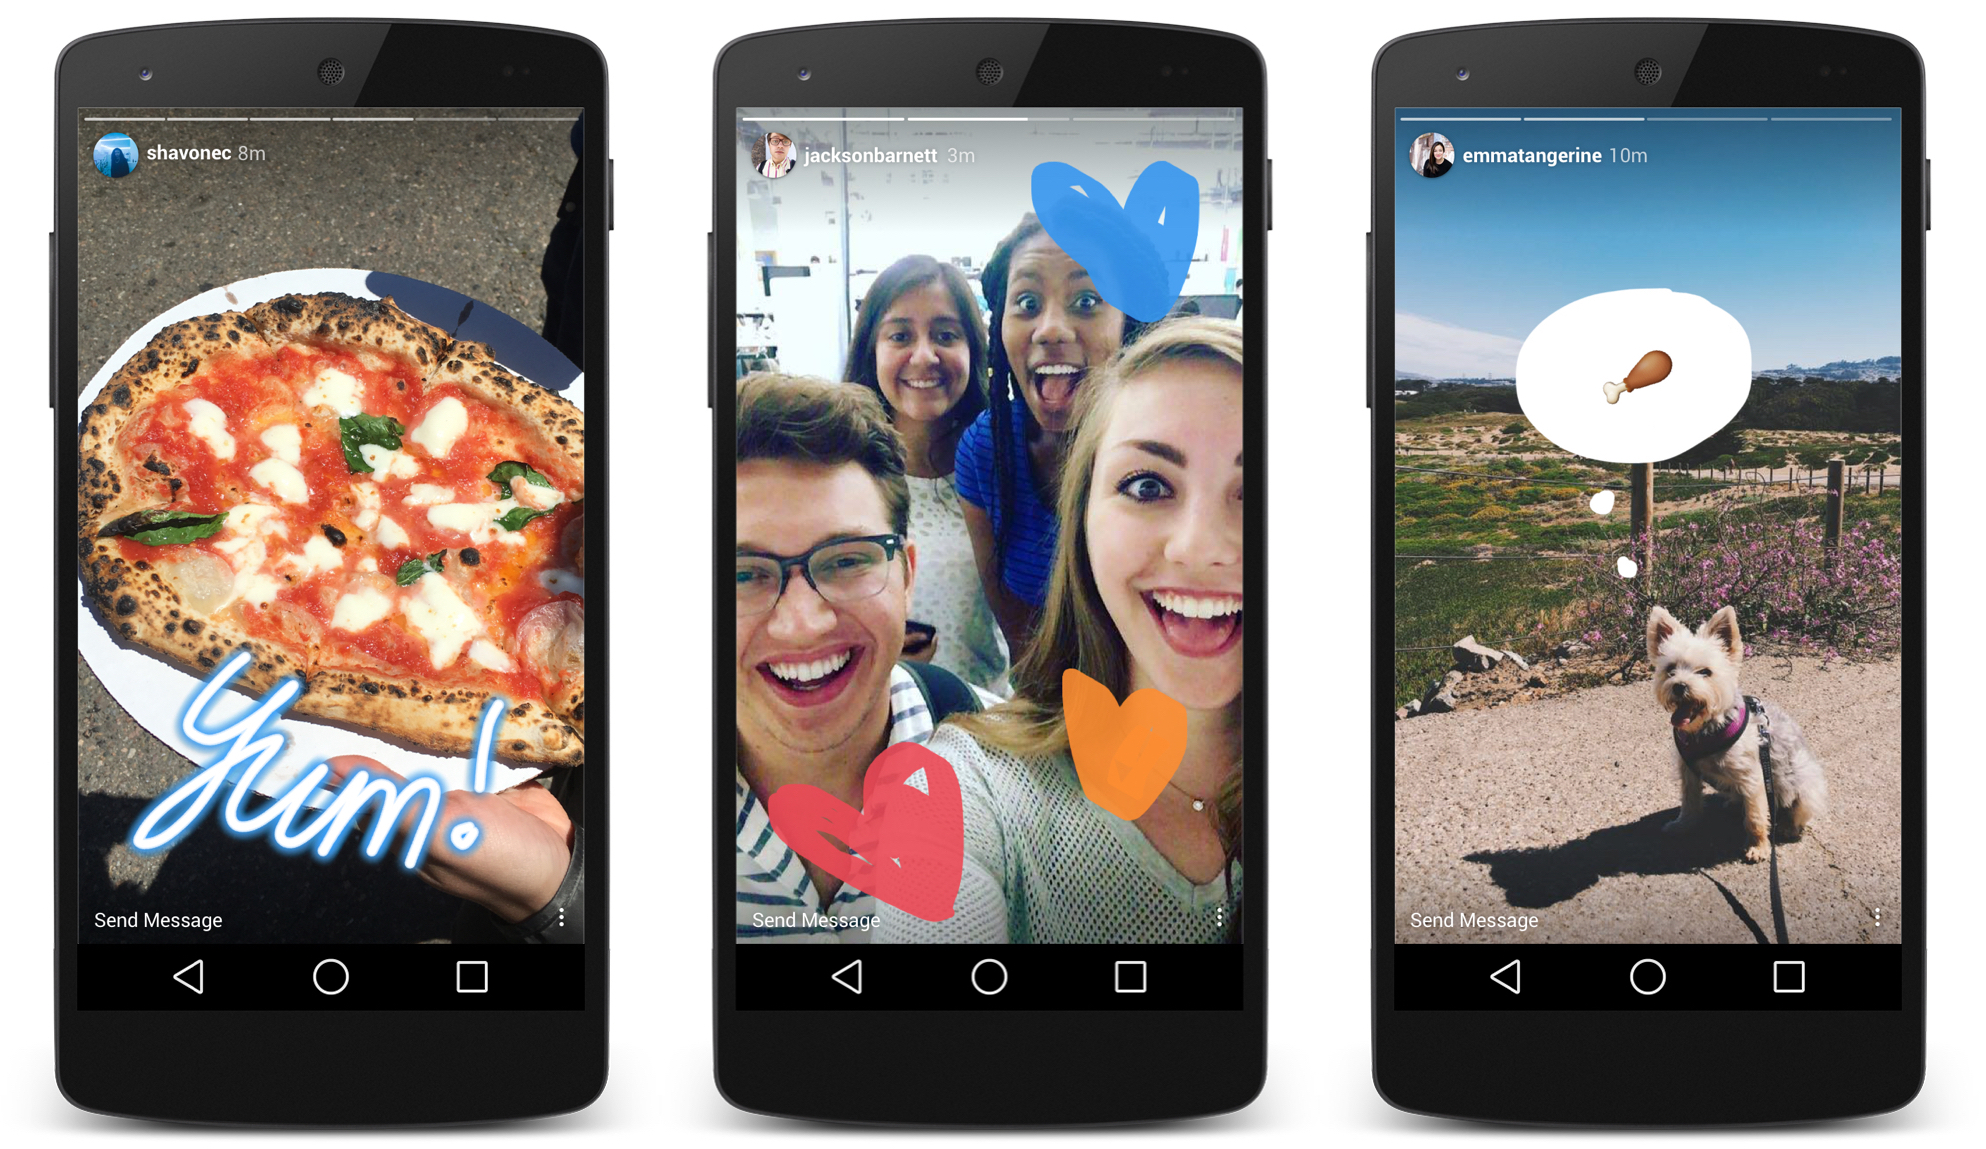 Instagram's New Features: Stories and Anti-Bullying Tools